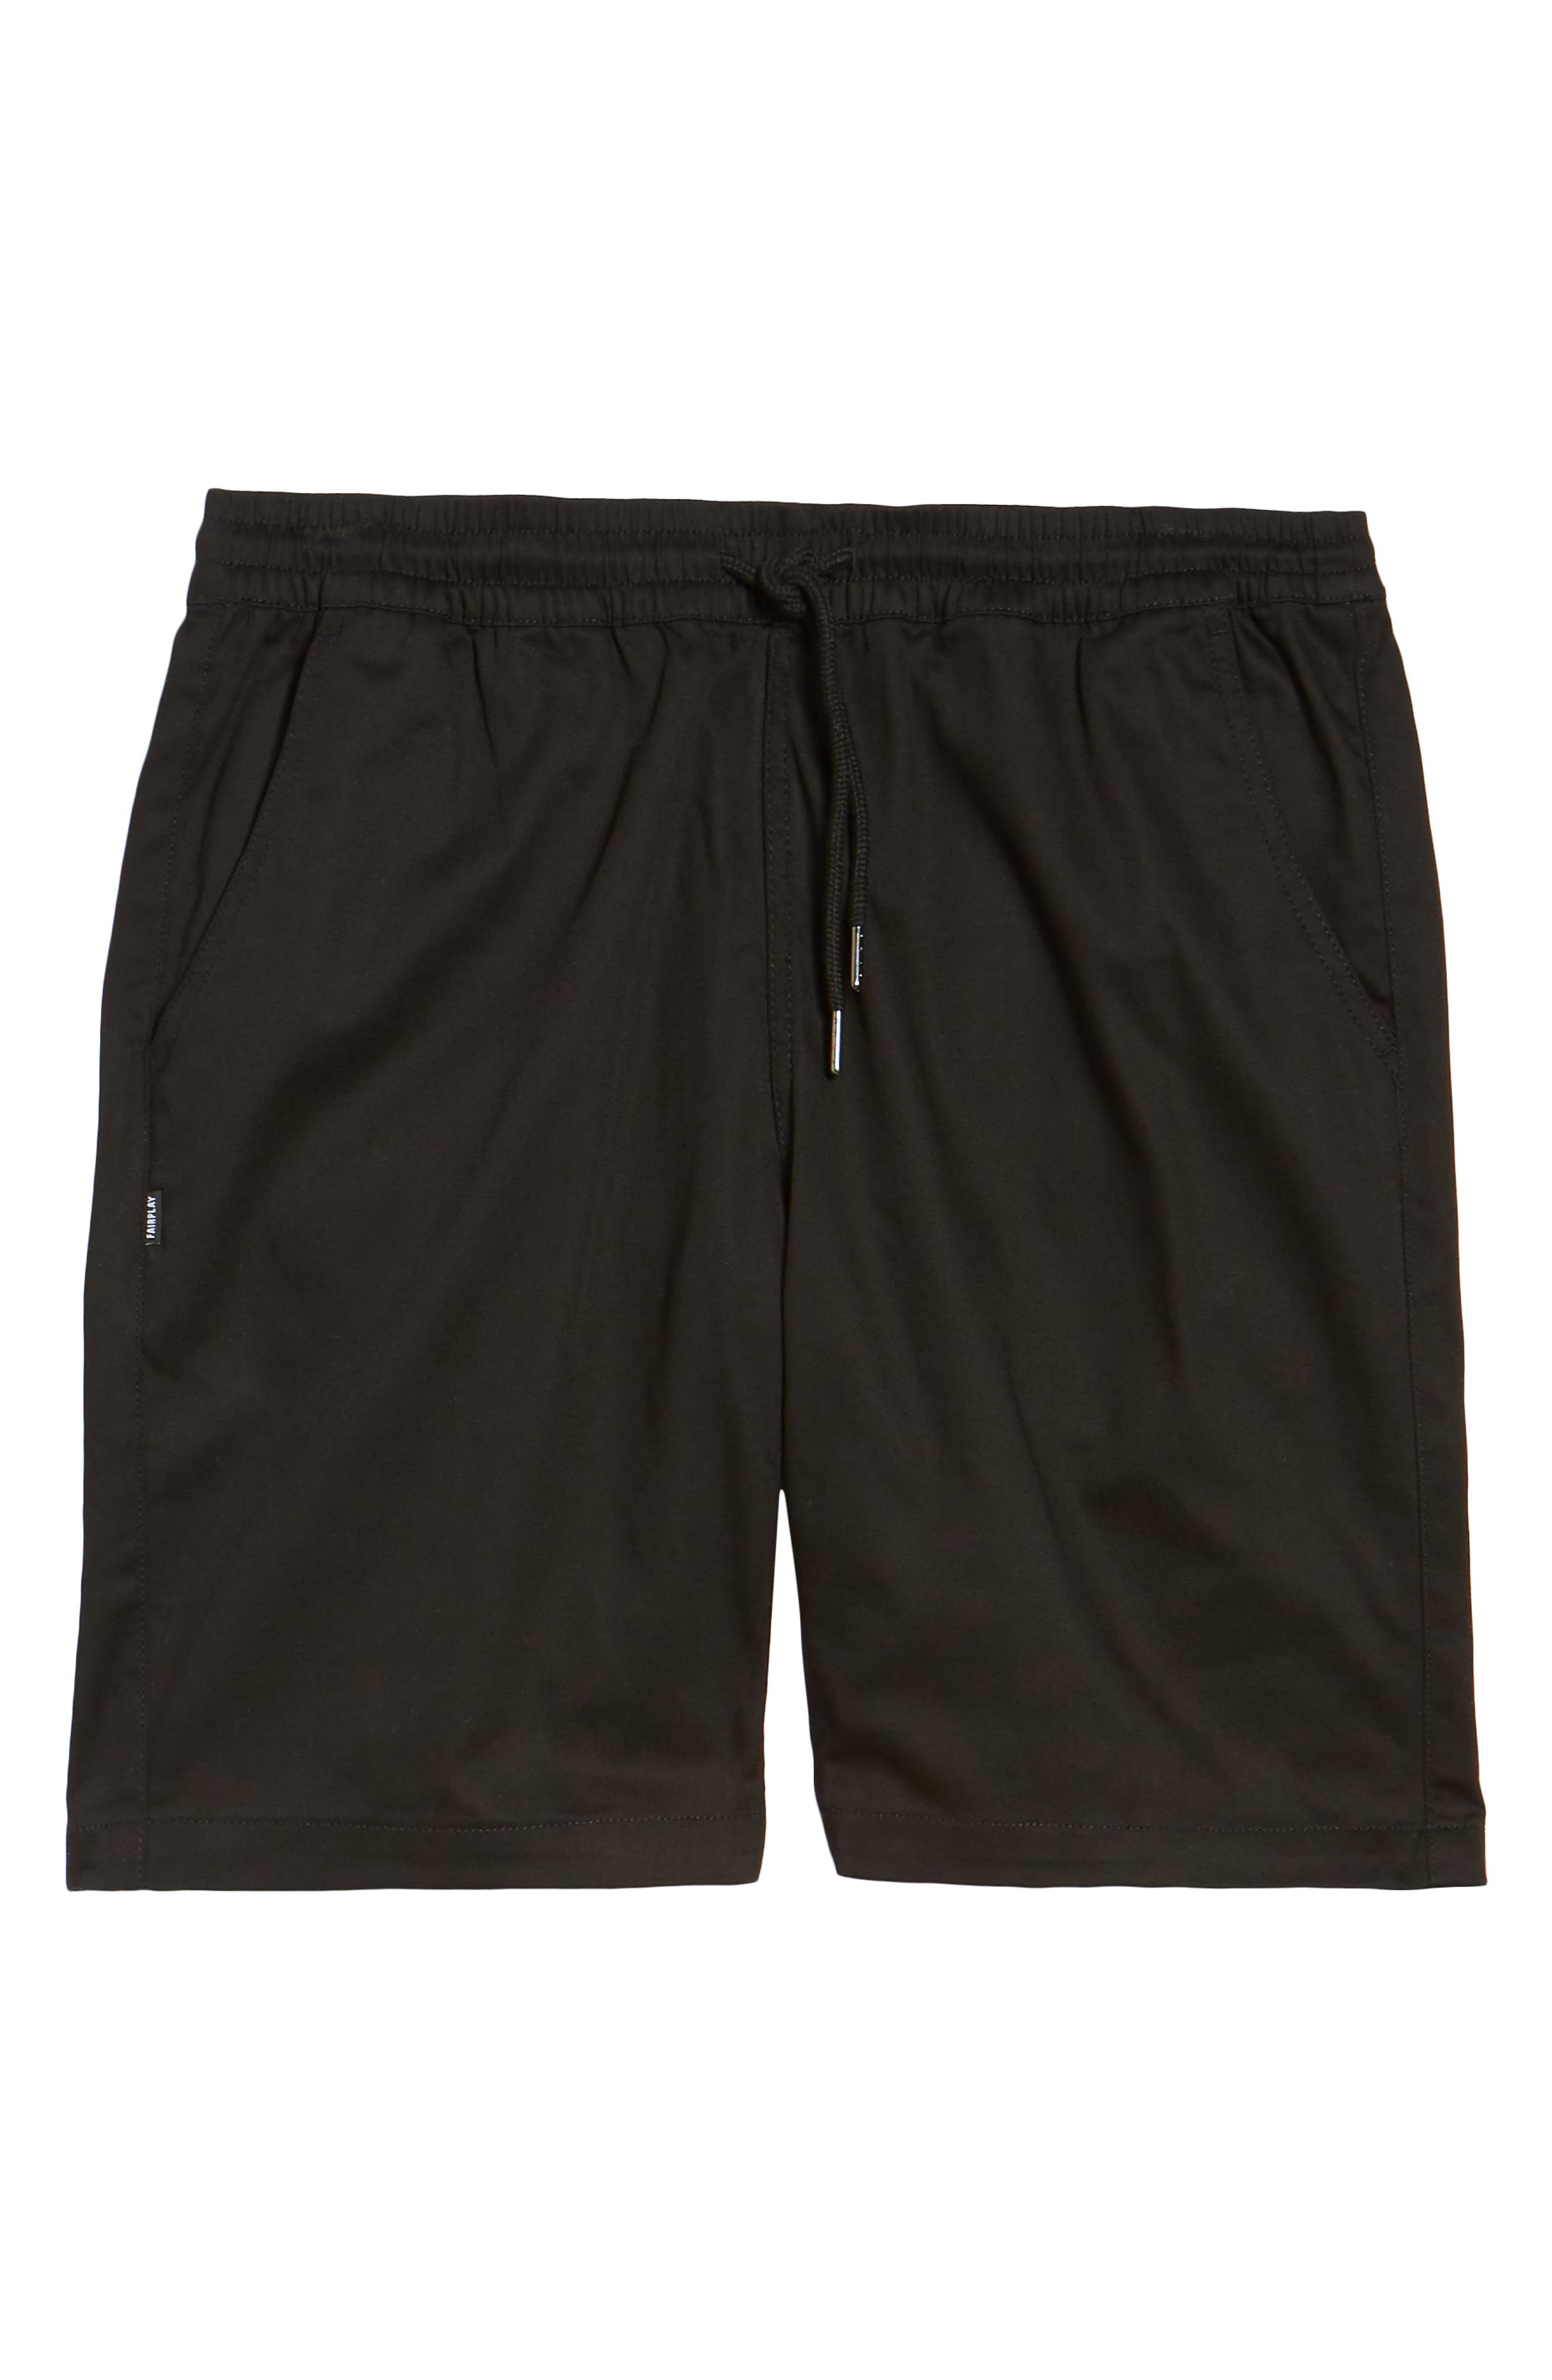 Runner Shorts,                             Alternate thumbnail 6, color,                             Black